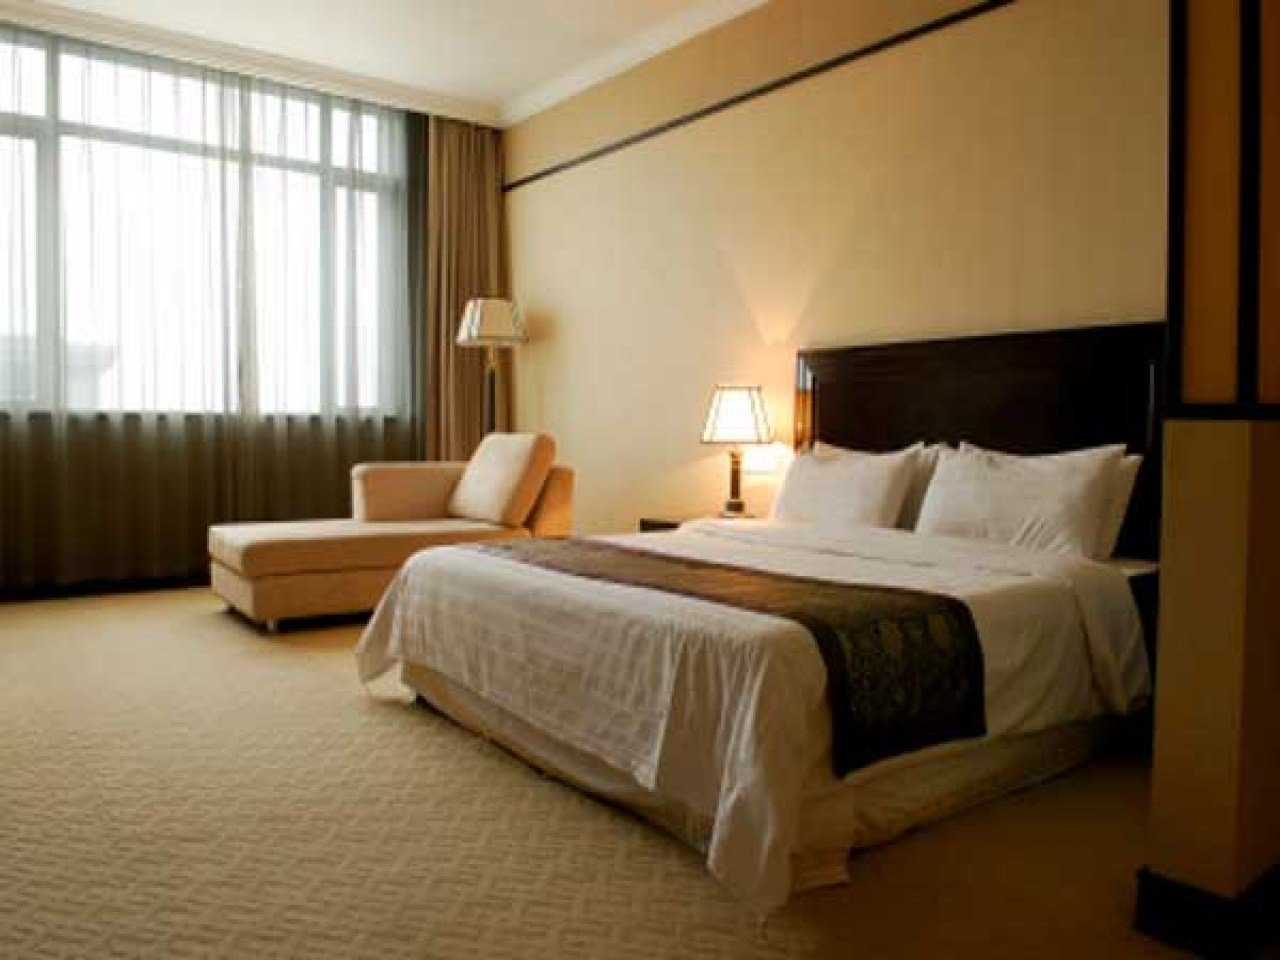 Best Carpets For Bedroom Bedroom Carpet Ideas Bedroom Rugs With Pictures